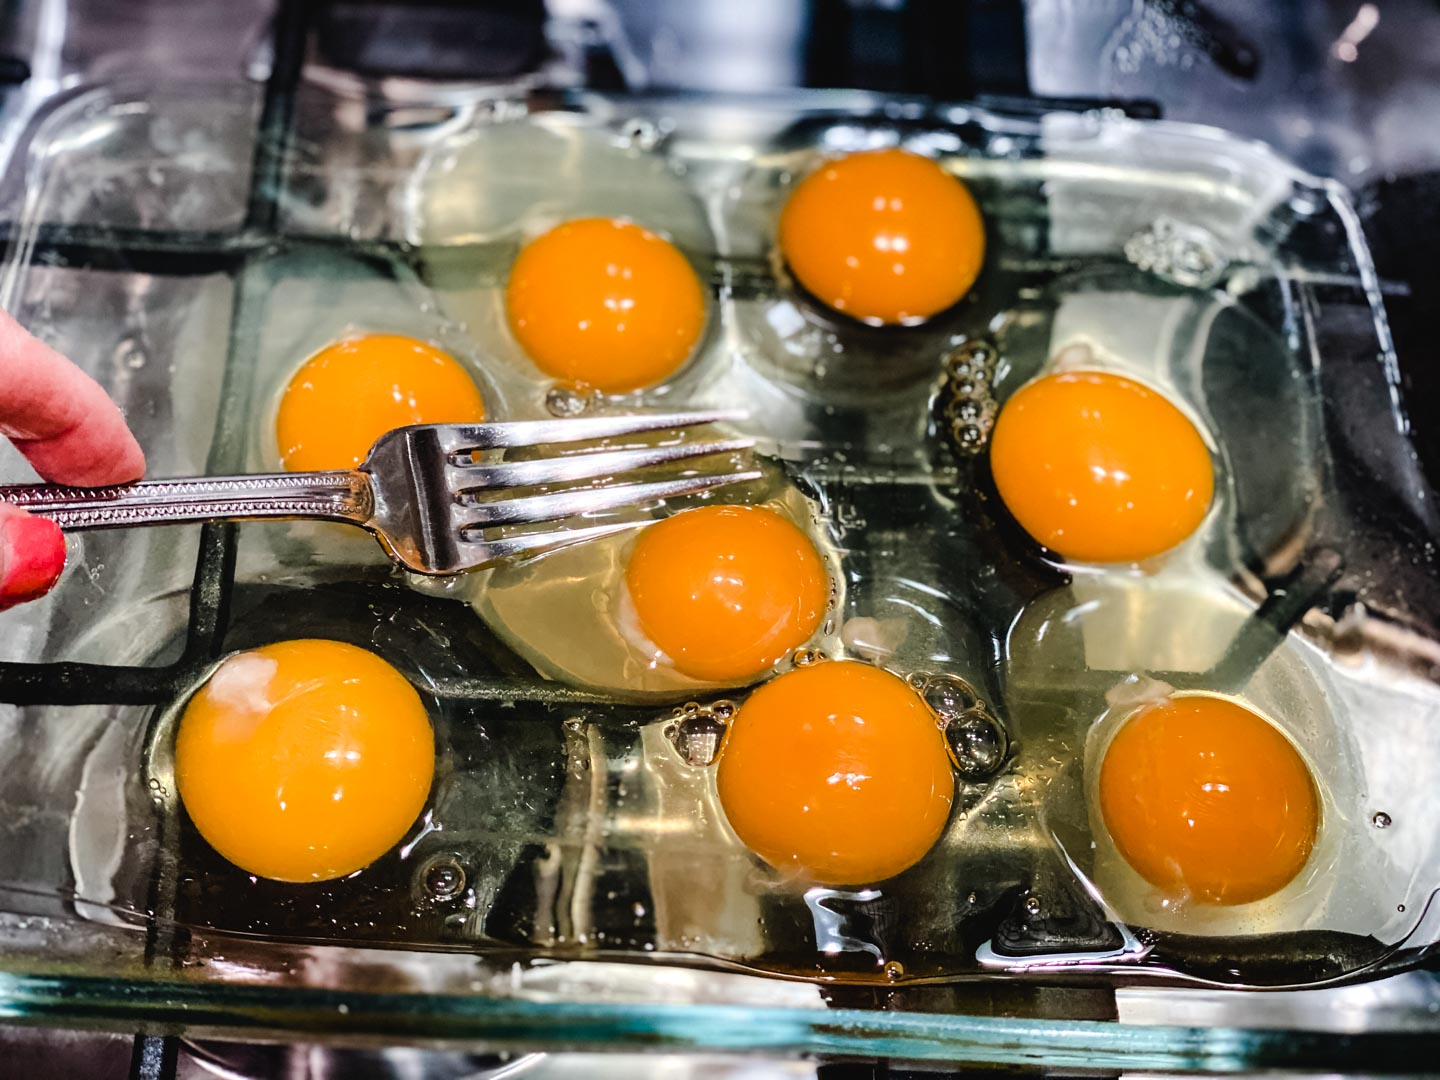 Baking dish with 8 eggs and a fork.